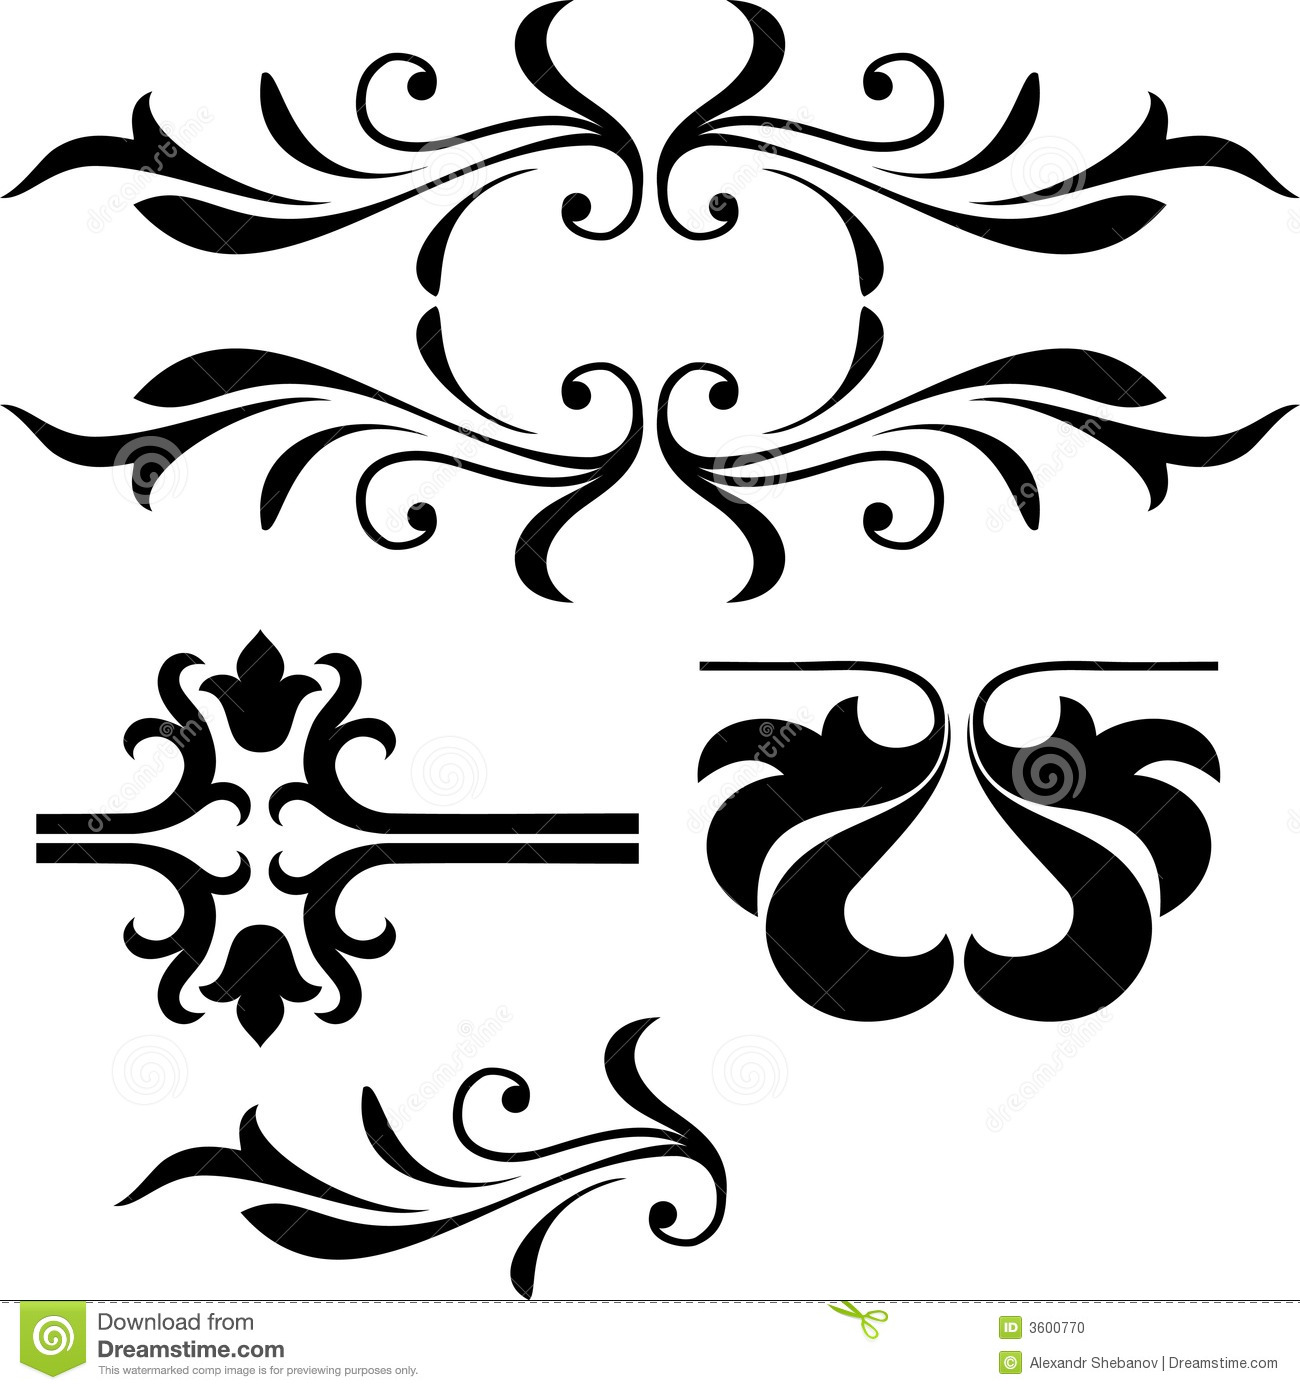 jpg royalty free download Western design clipart. Portal